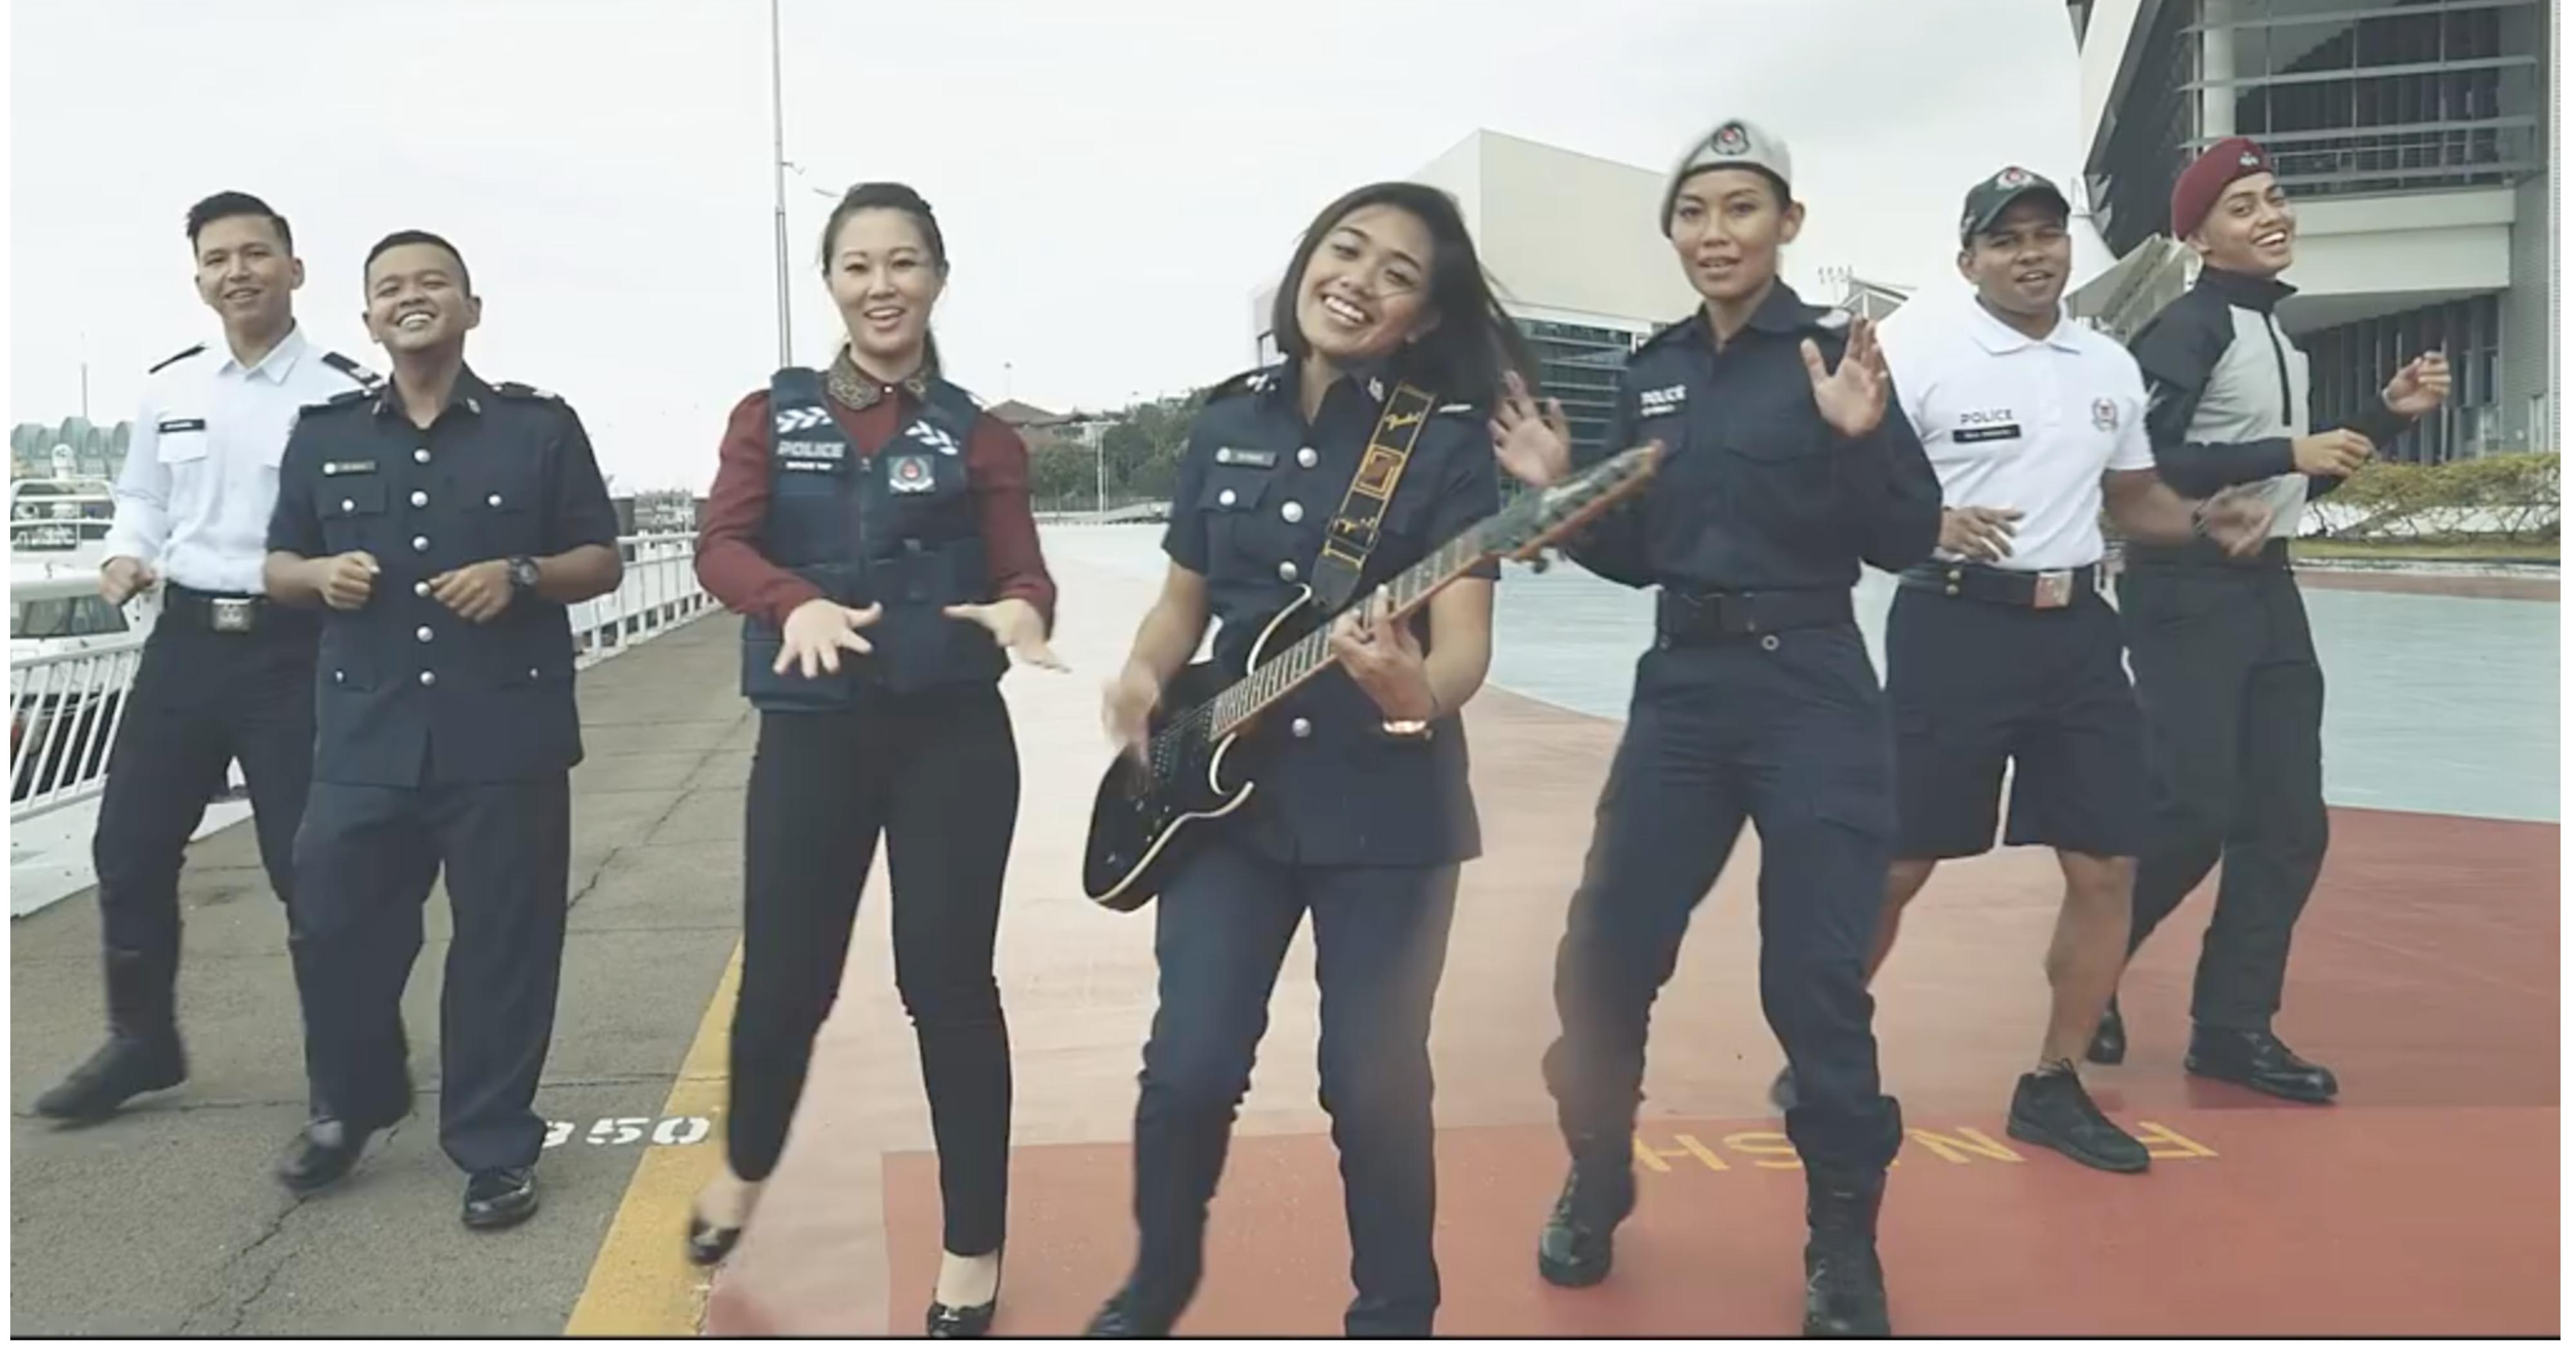 Singapore Police Force (SPF) have released a music video wishing all citizens Merry Christmas and a Happy New Year. Photo courtesy: Facebook page of SPF